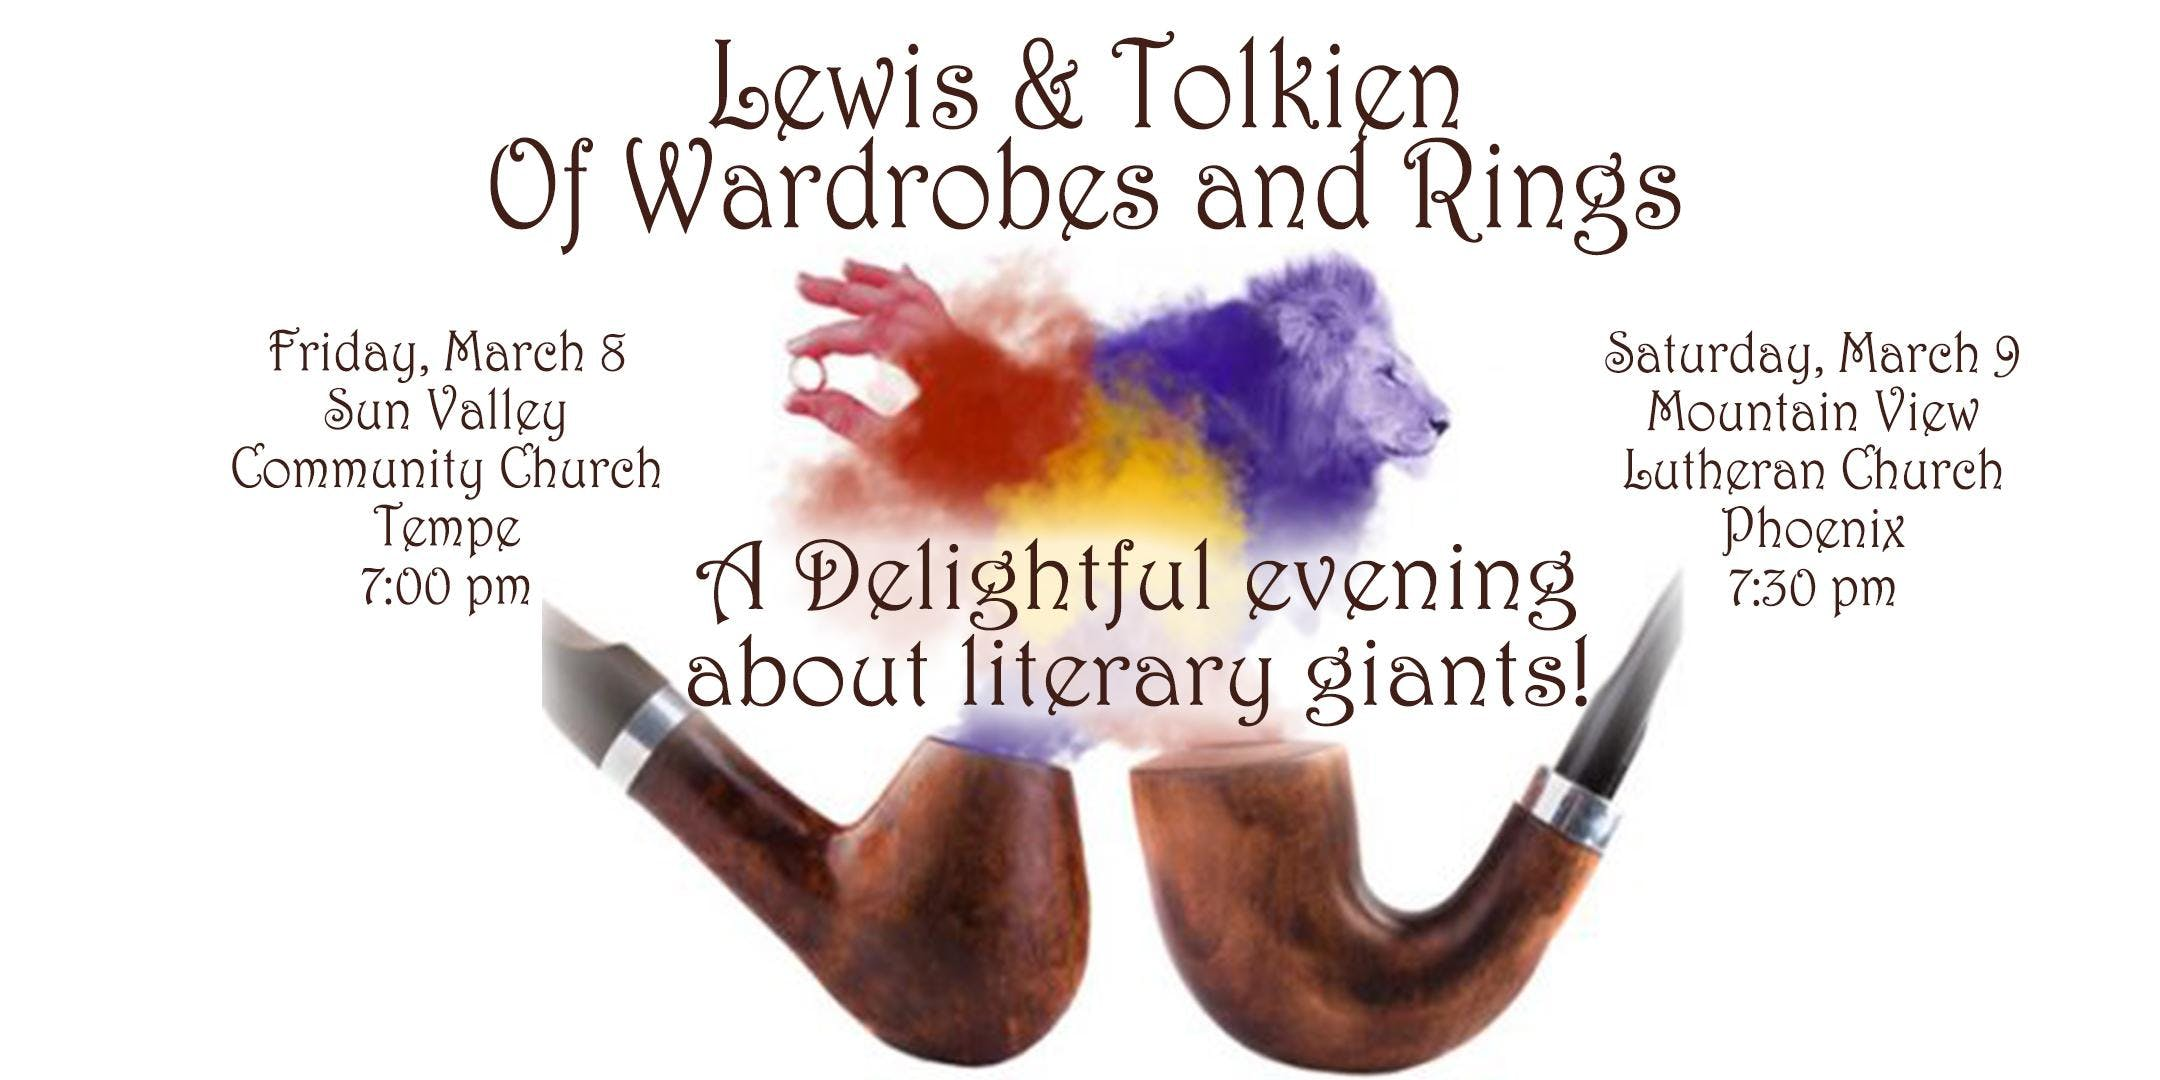 Lewis & Tolkien - Of Wardrobes and Rings